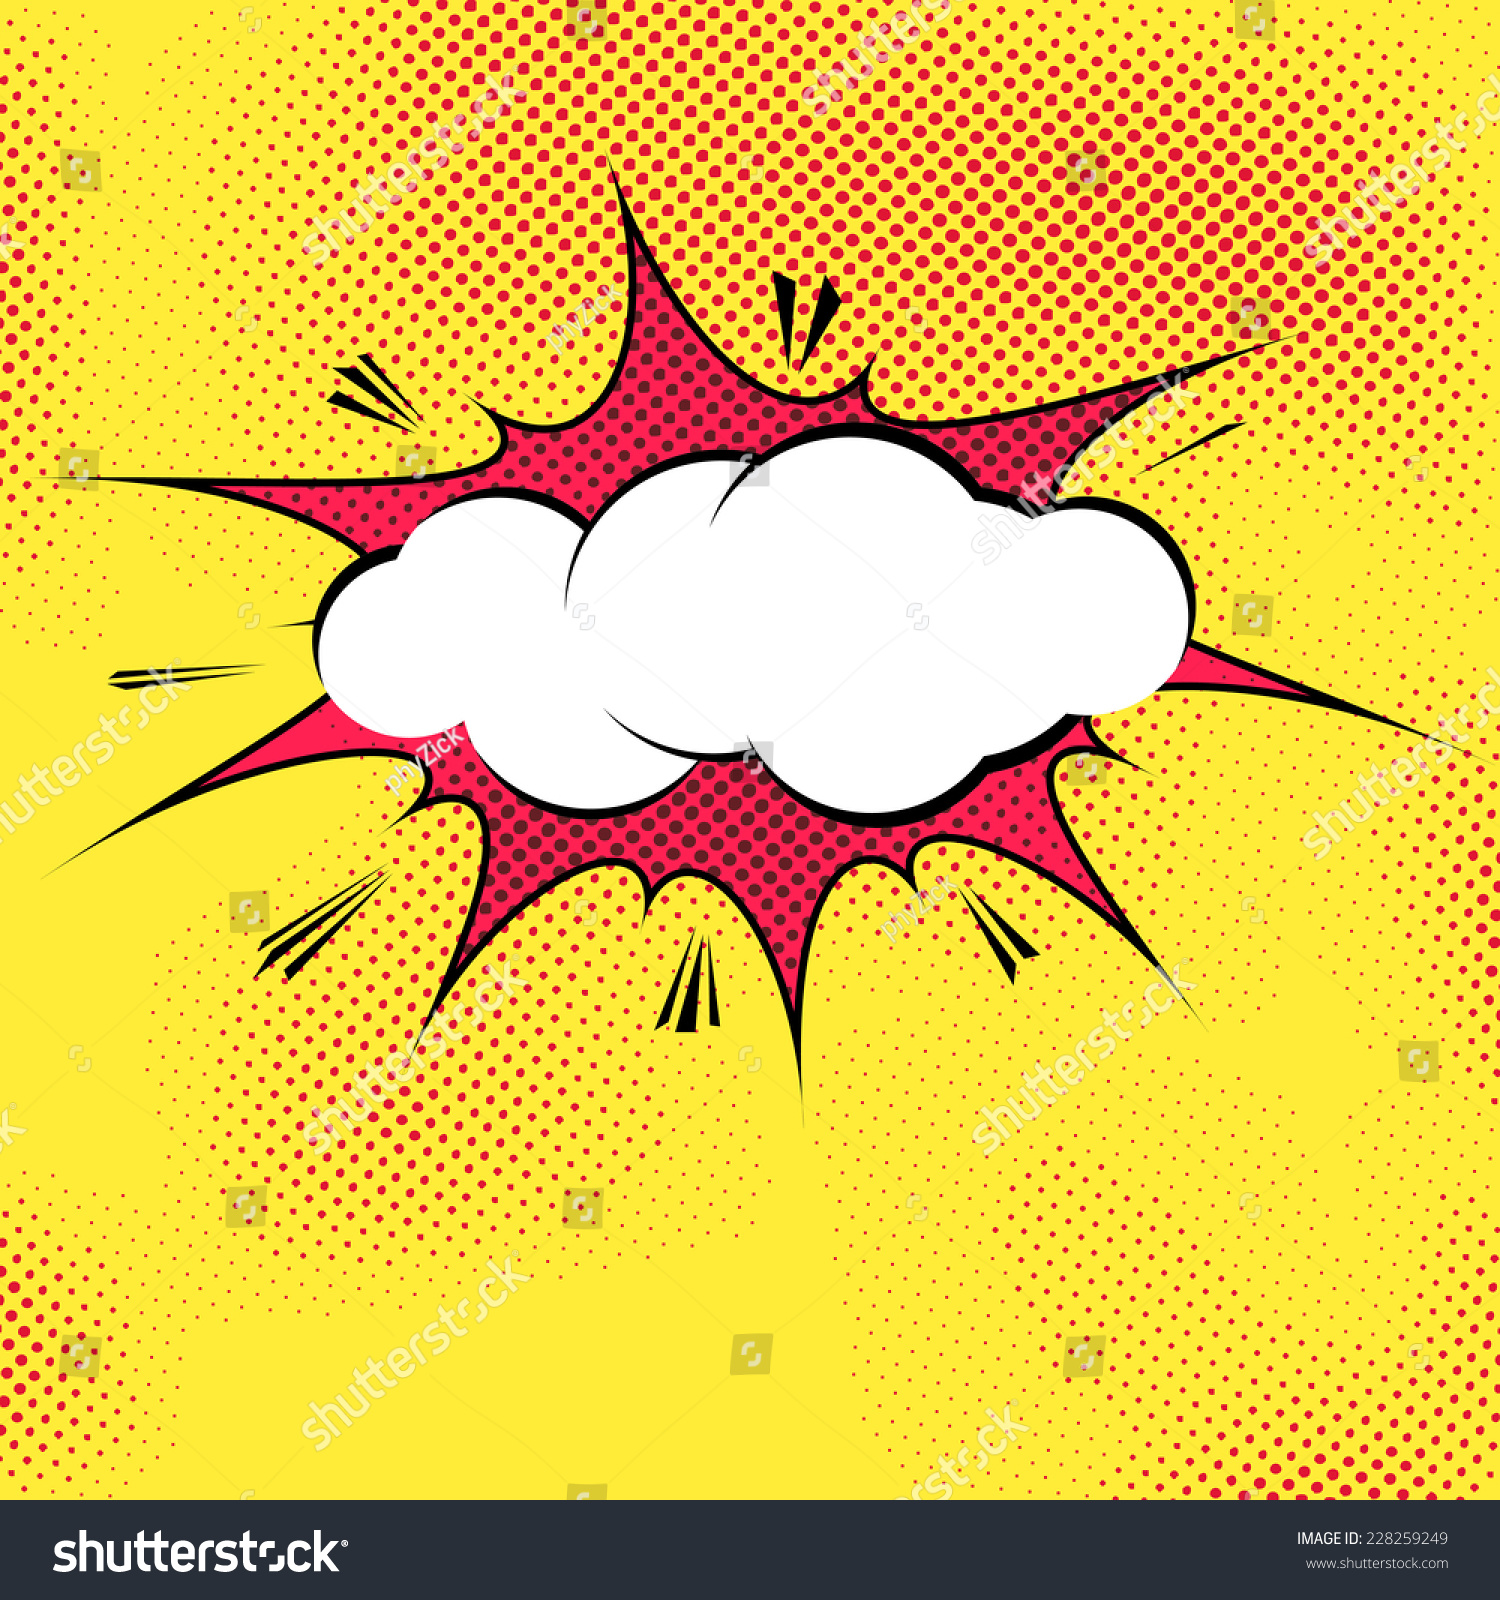 explosion background templates free